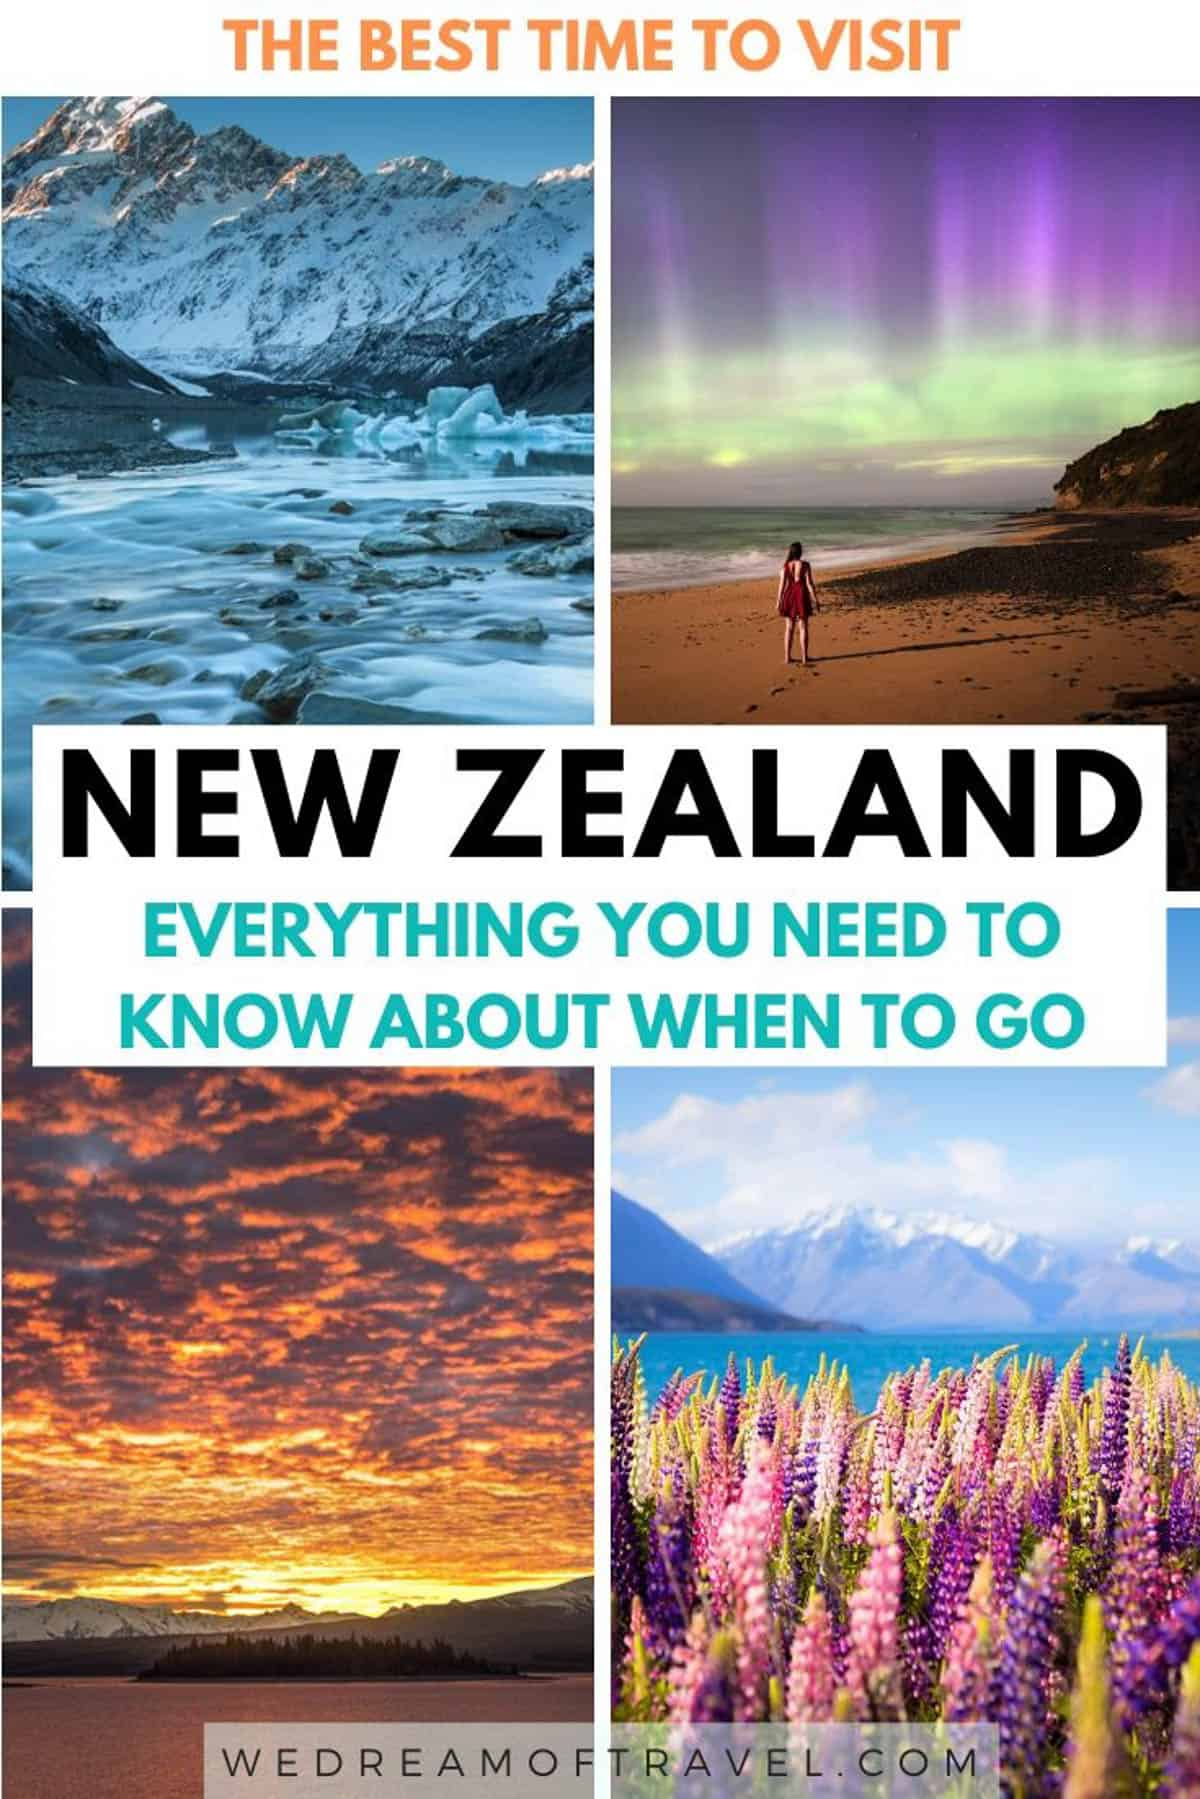 Trying to decide when to travel to New Zealand?  This guide will help you figure out when the best time to visit New Zealand is for you.  Information based on month, seasons and events to help you plan your travels to New Zealand! #newzealand #travel